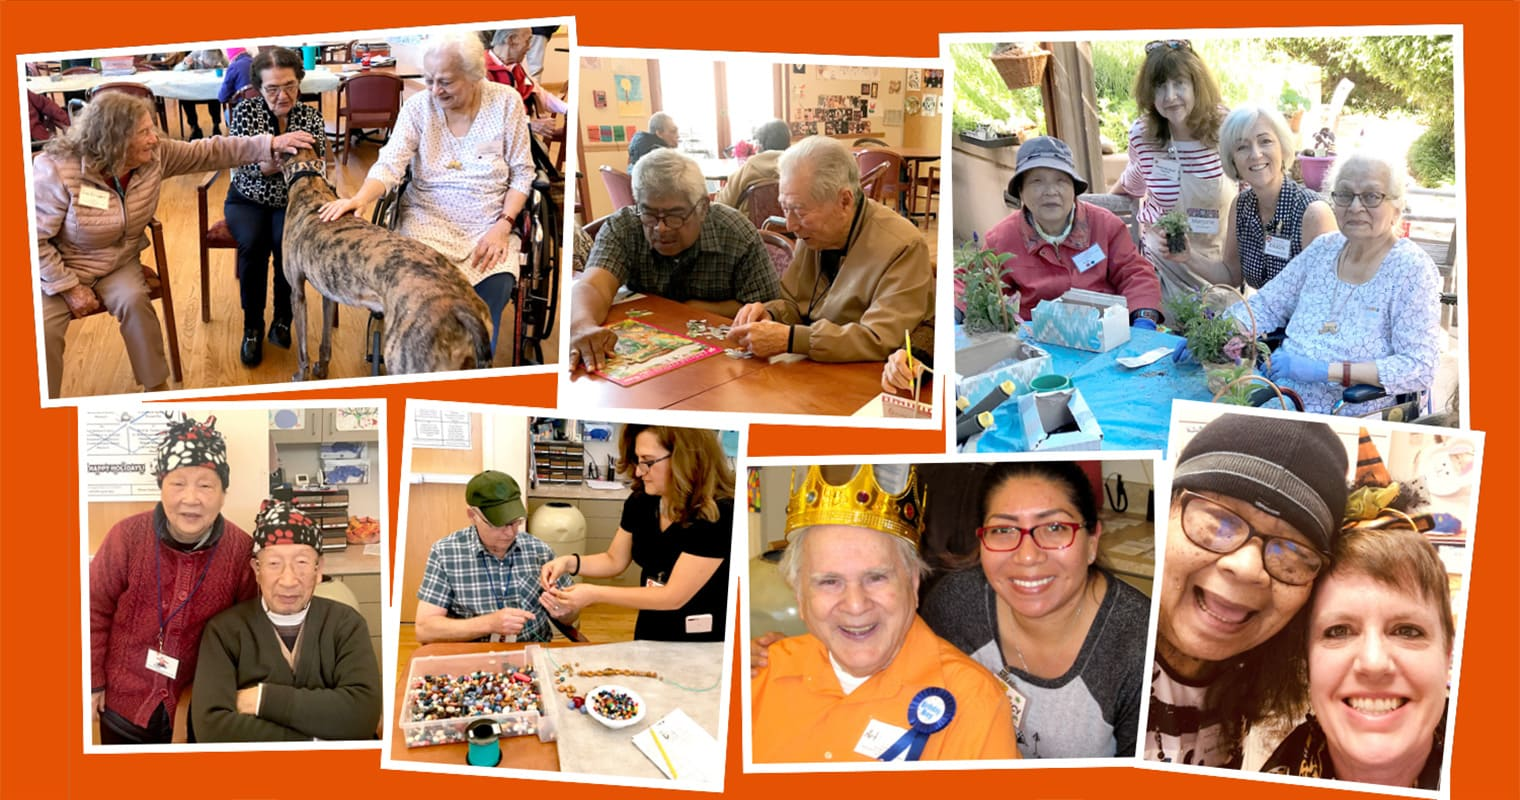 Collage of photos of Avenidas Rose Kleiner Center participants and staff enjoying activities together before the pandemic